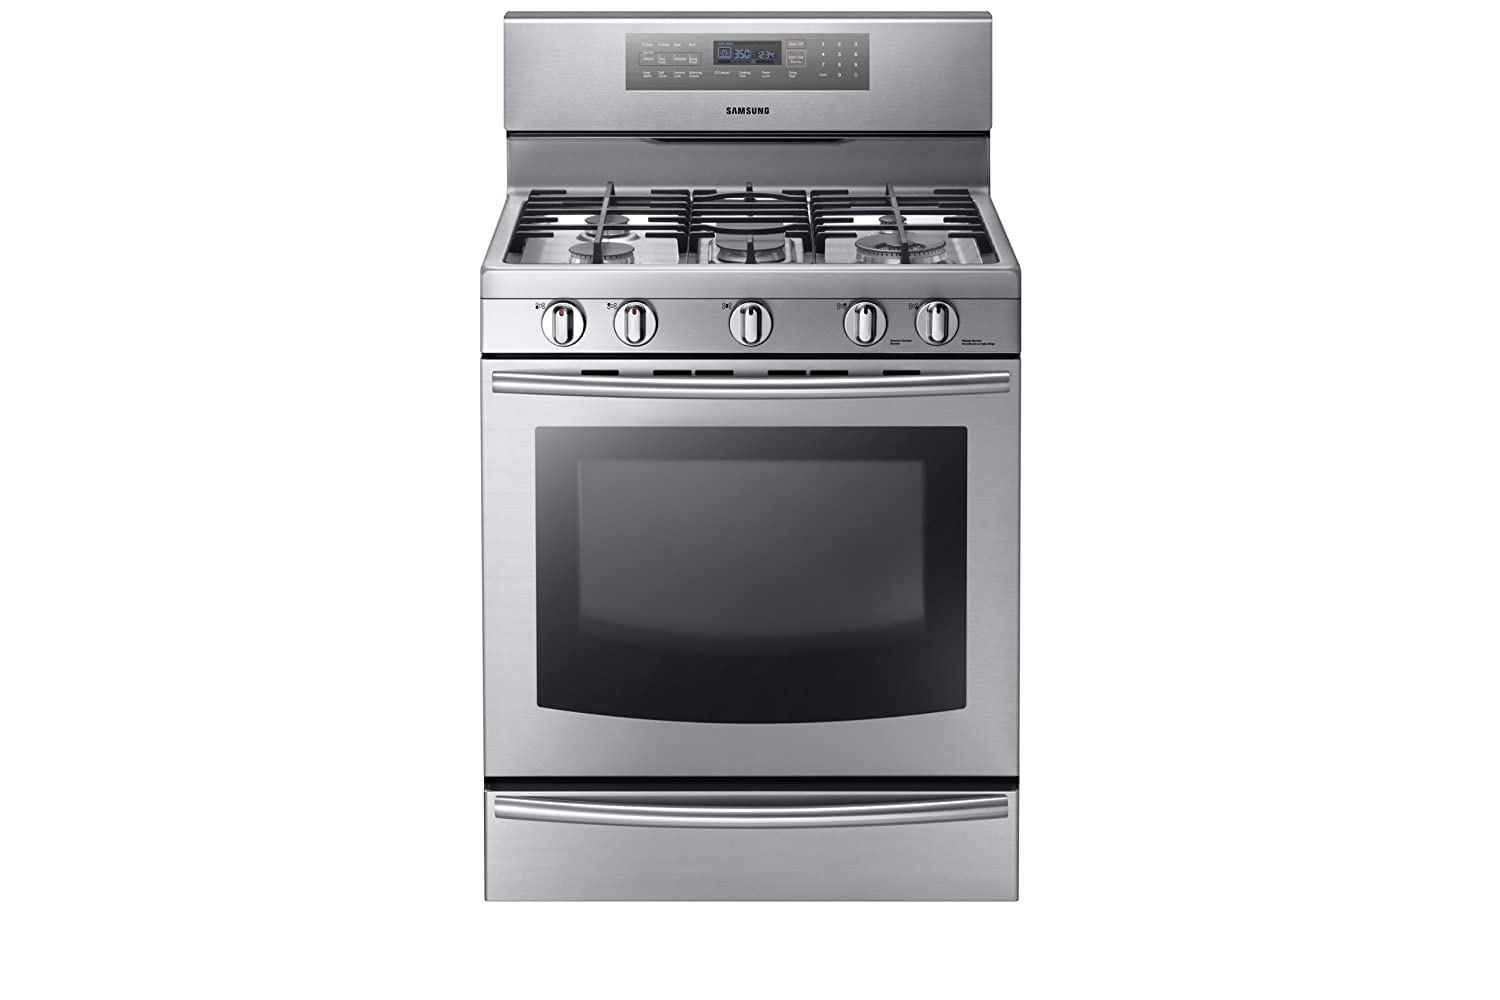 amazoncom samsung nx58f5700ws stainless steel gas range with true convection appliances